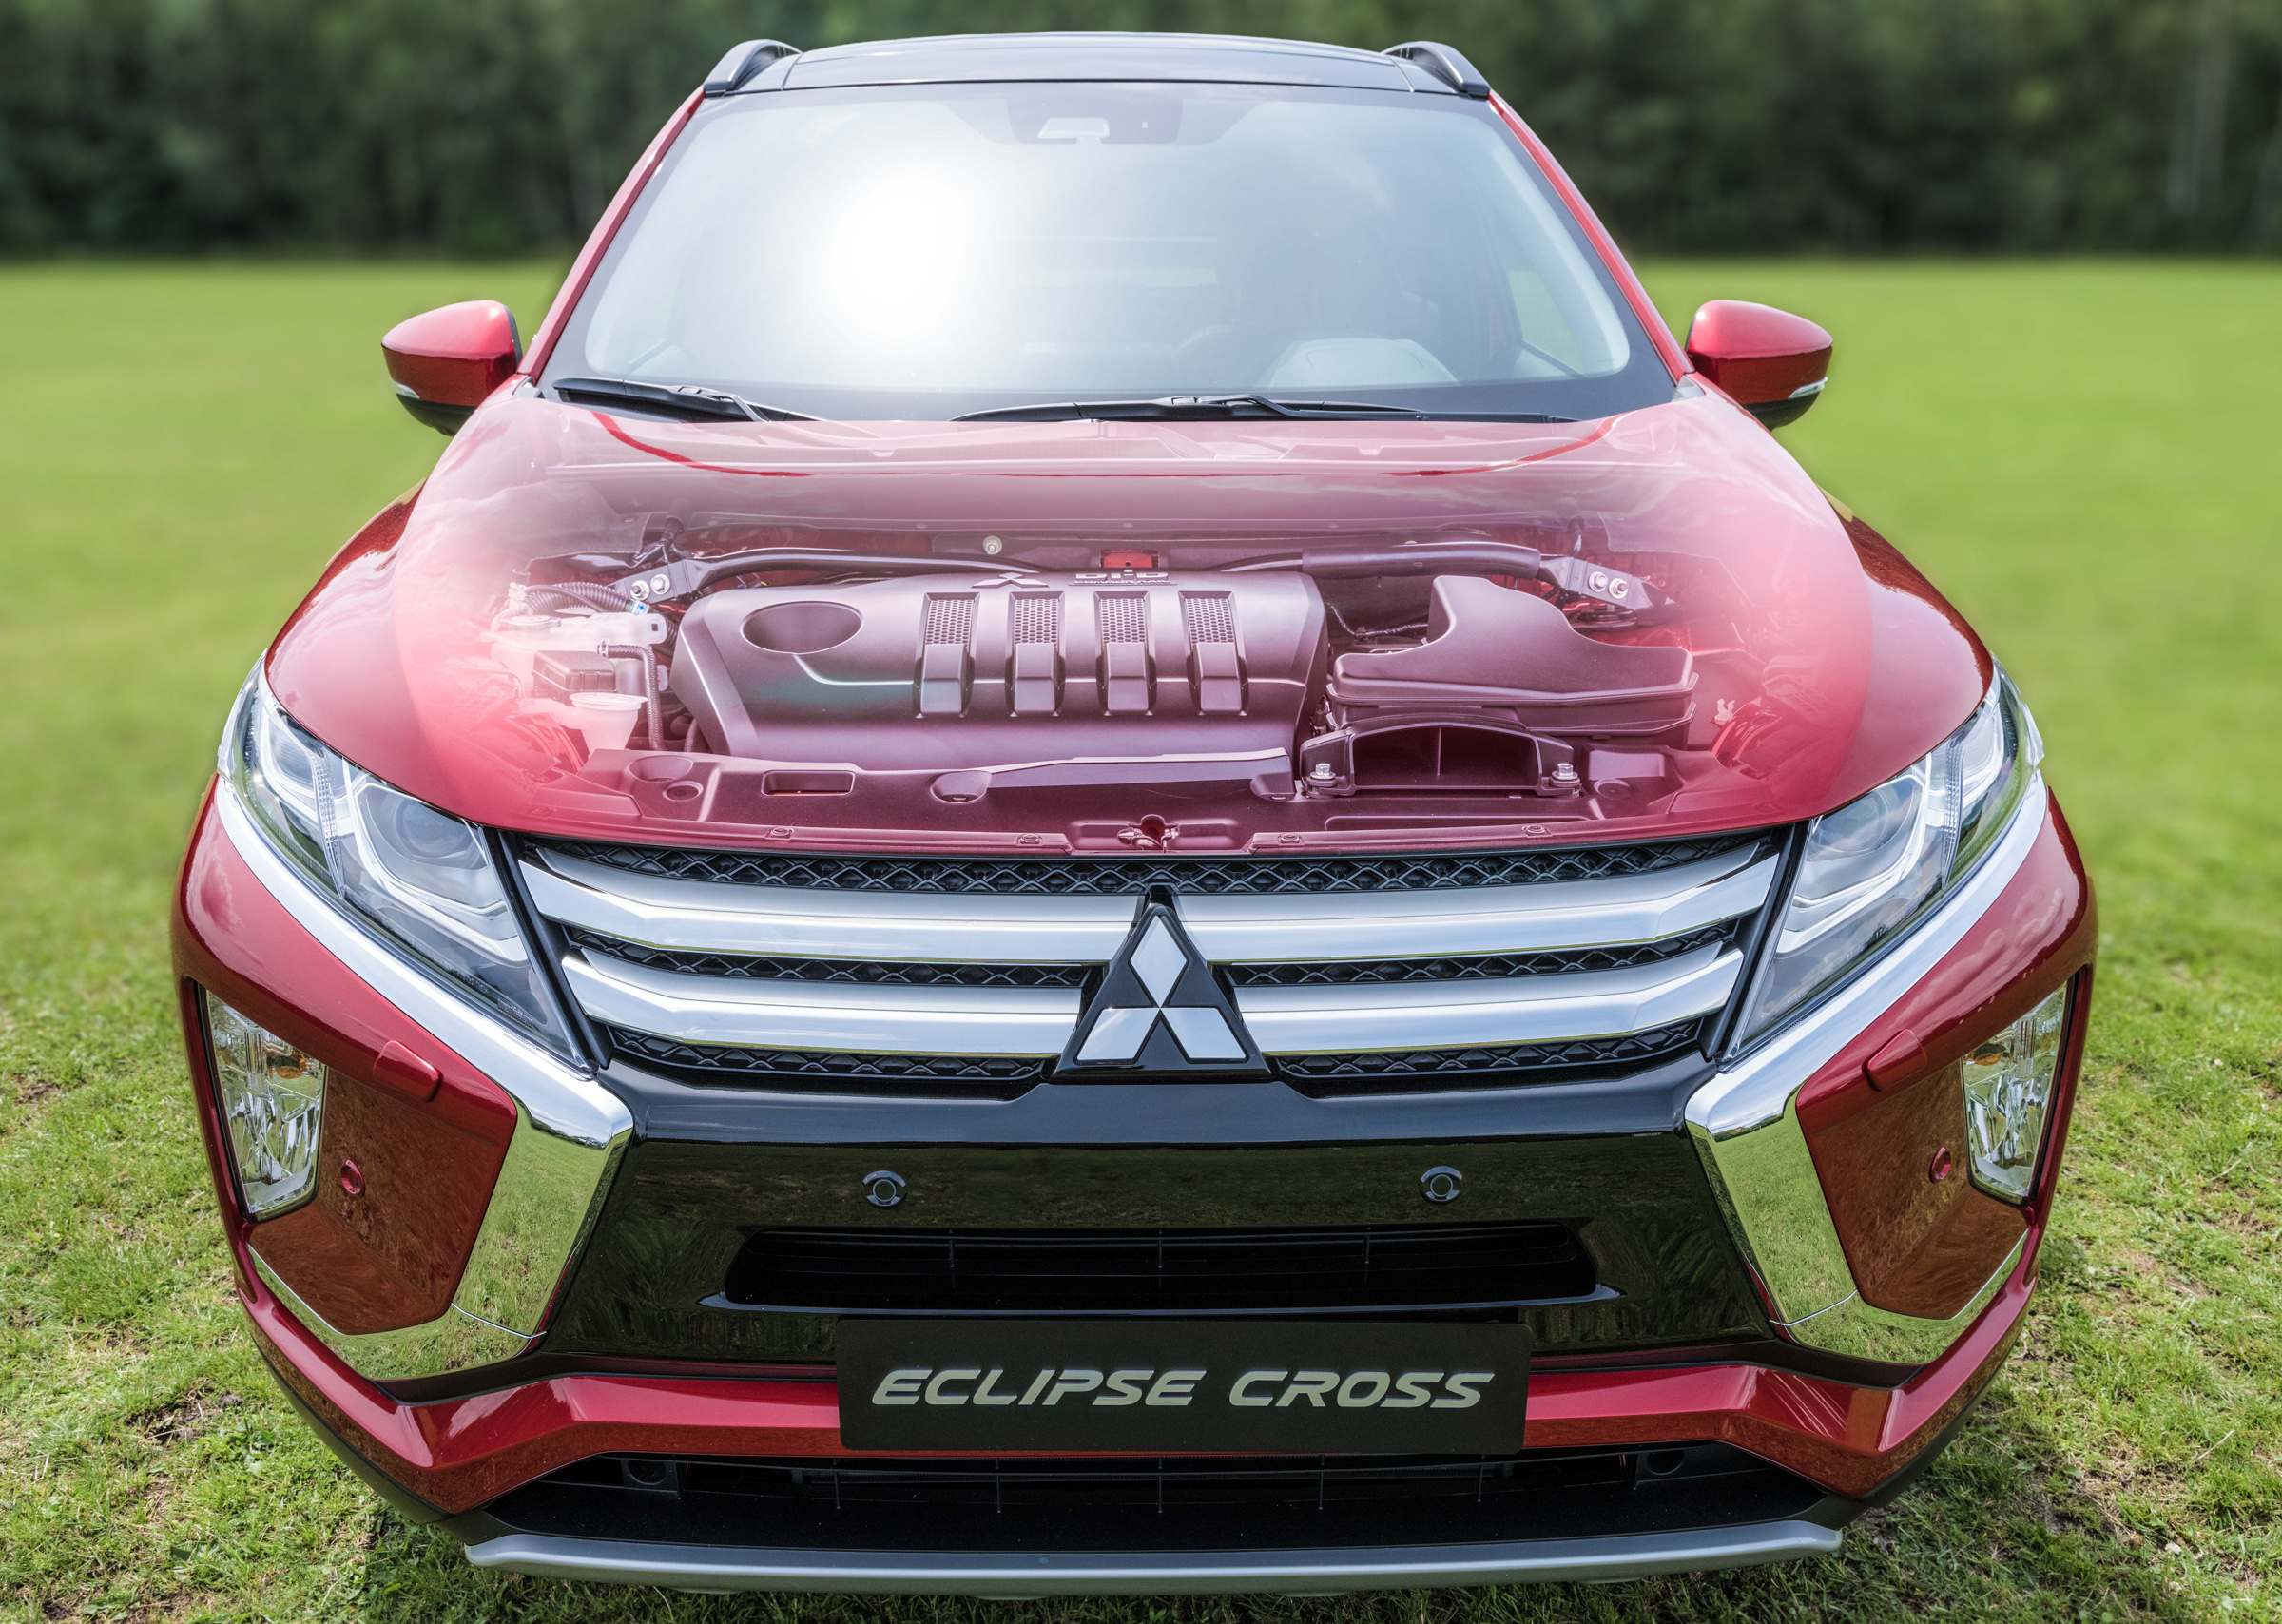 Mitsubishi_Eclipse_Cross_gra_w_polo  25jpg